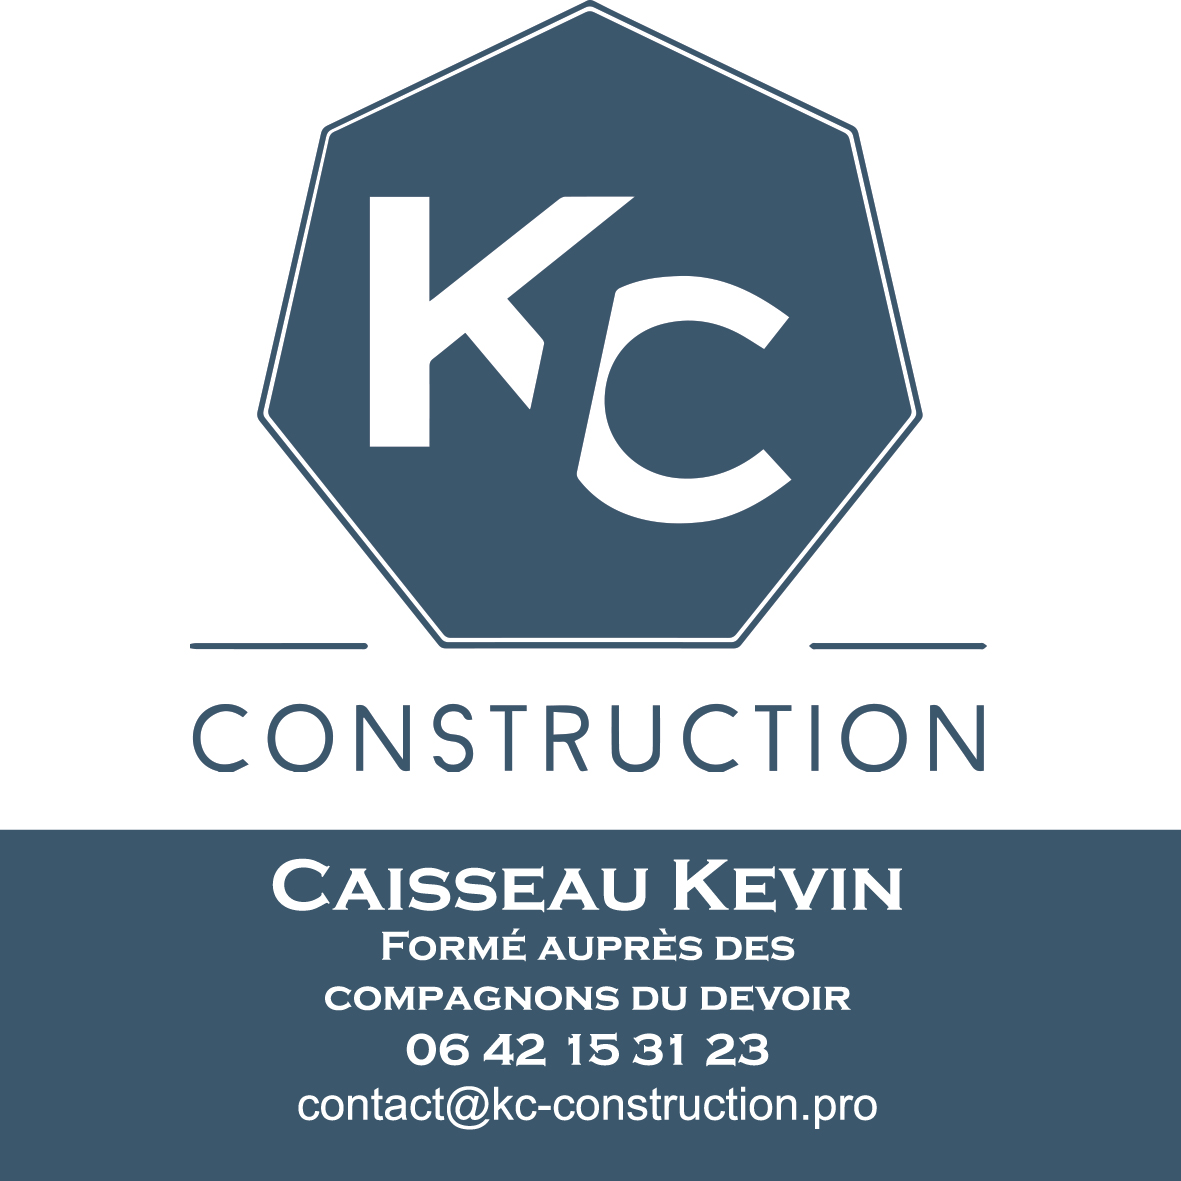 kc construction adresse